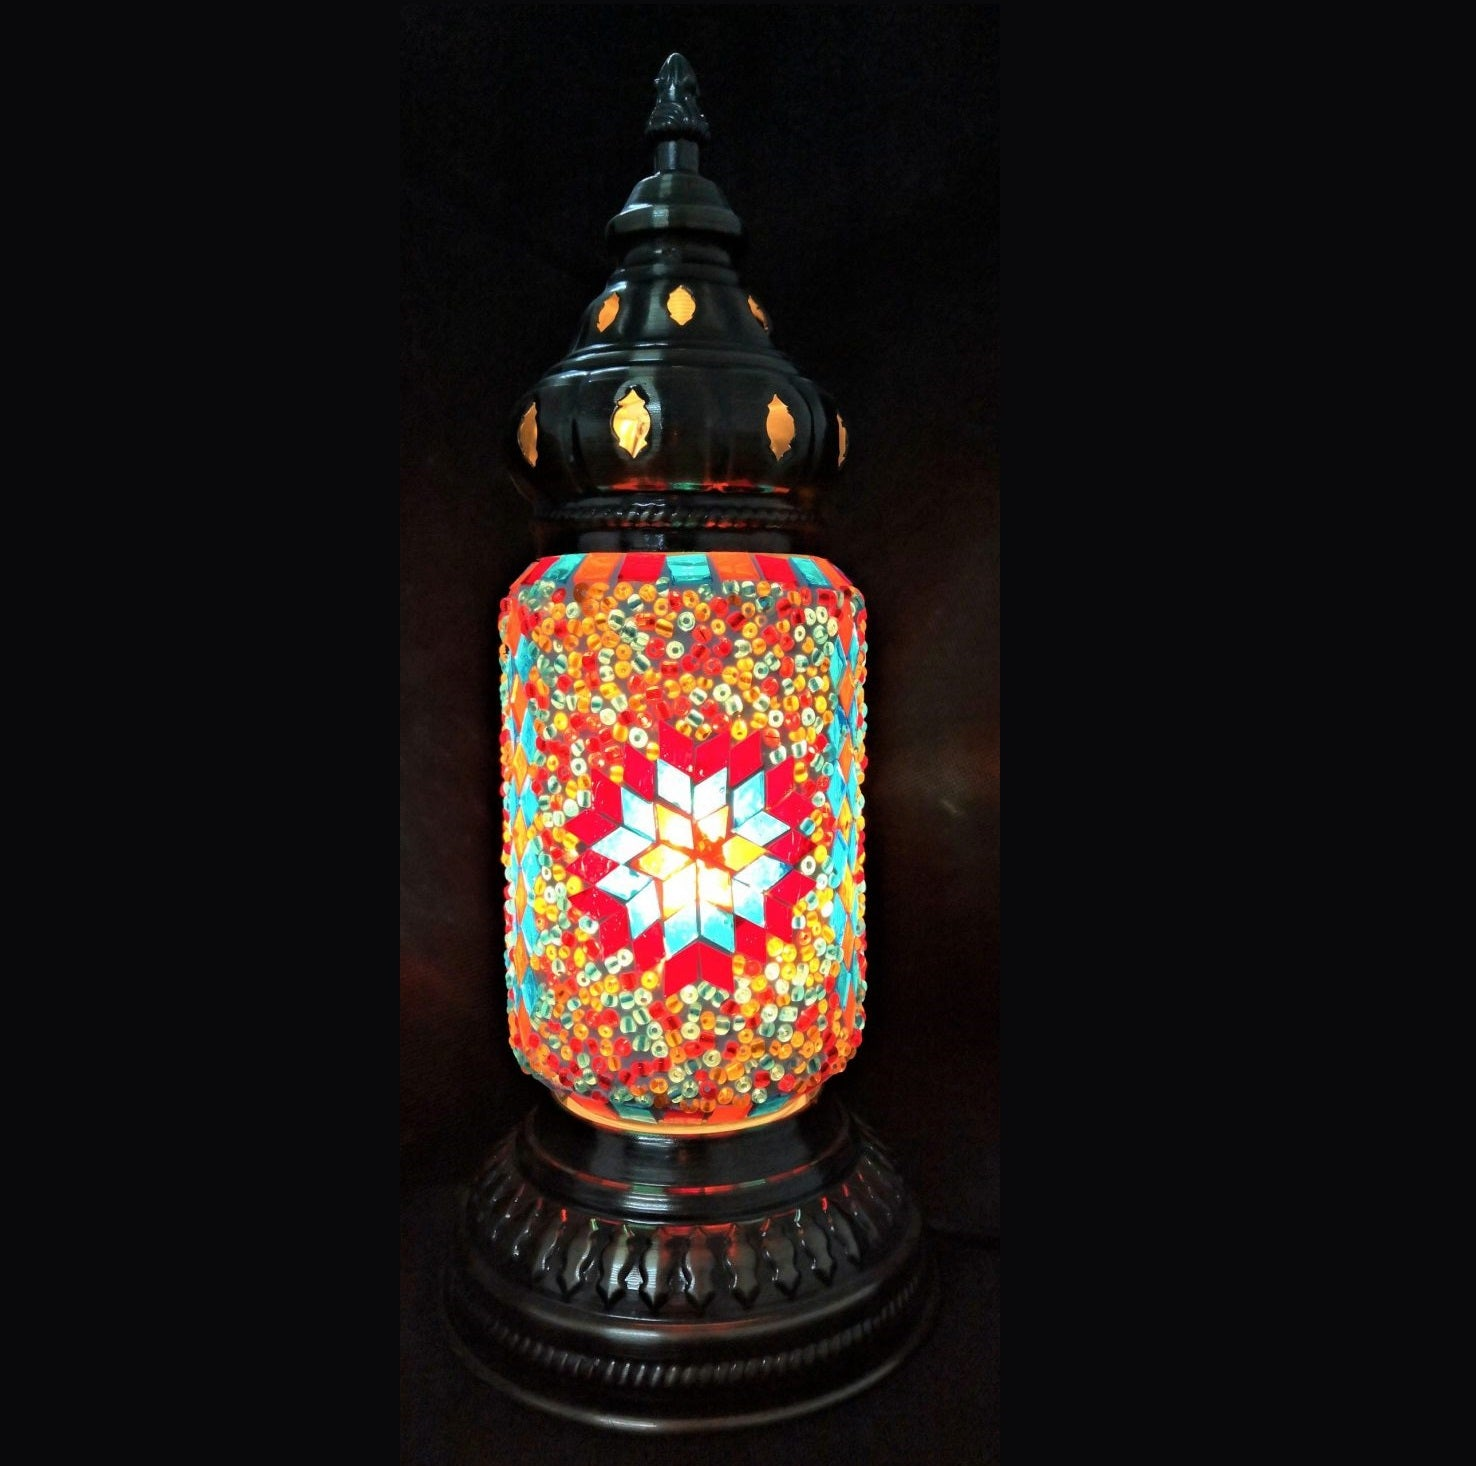 Turkish Mosaic Lamp Ottoman Style VI - Rivendell Shop NZ